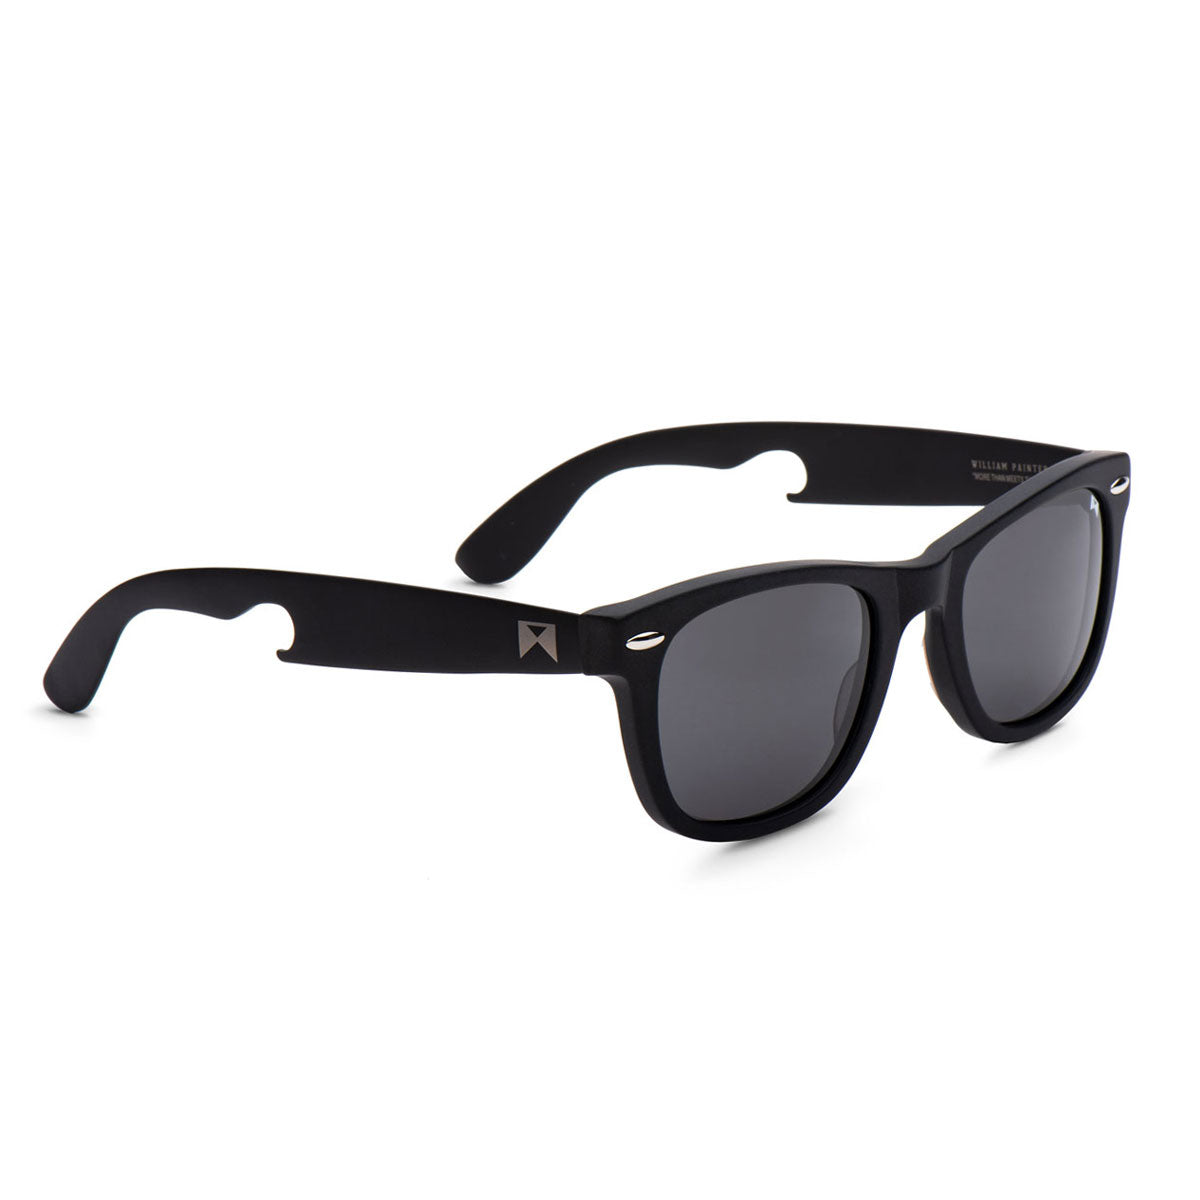 fc7ab3565778 Titanium Sunglasses by William Painter